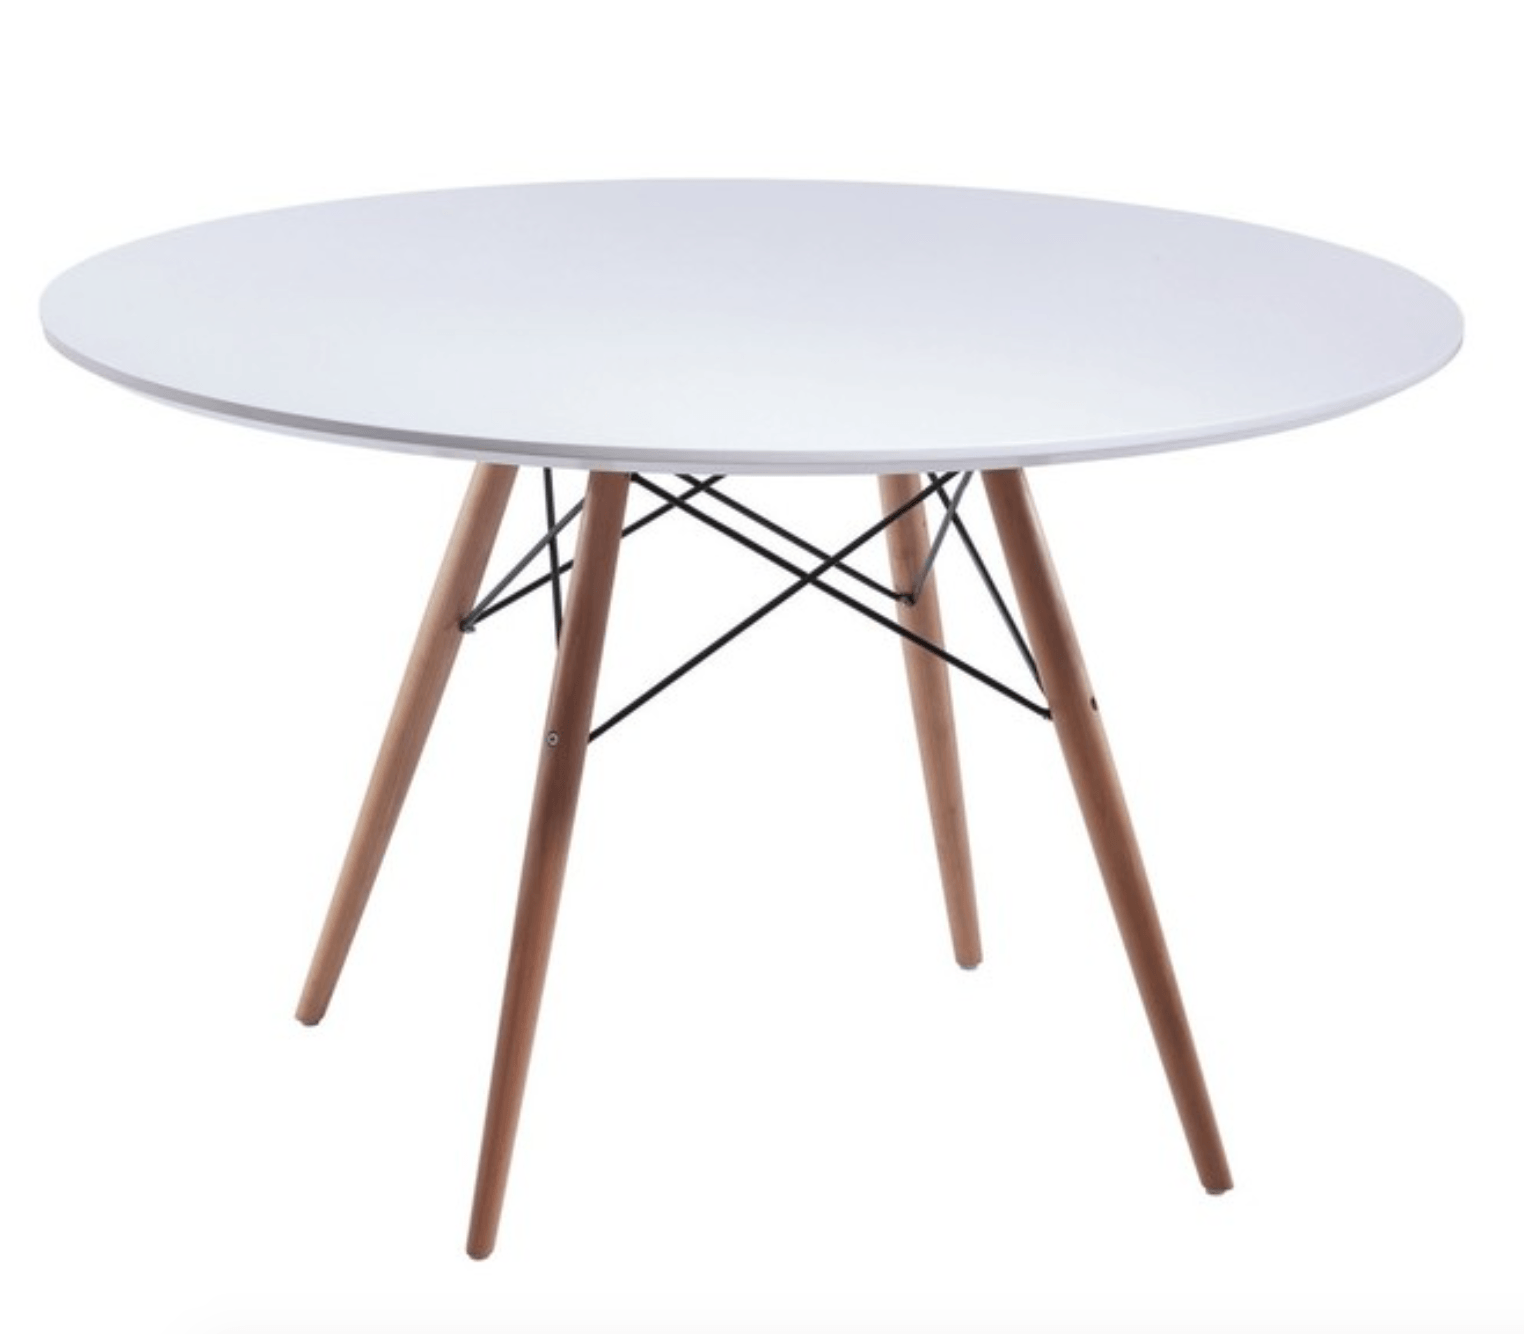 Mid Century Modern Dining Table 36 Round By Fine Mod Imports Twist Modern